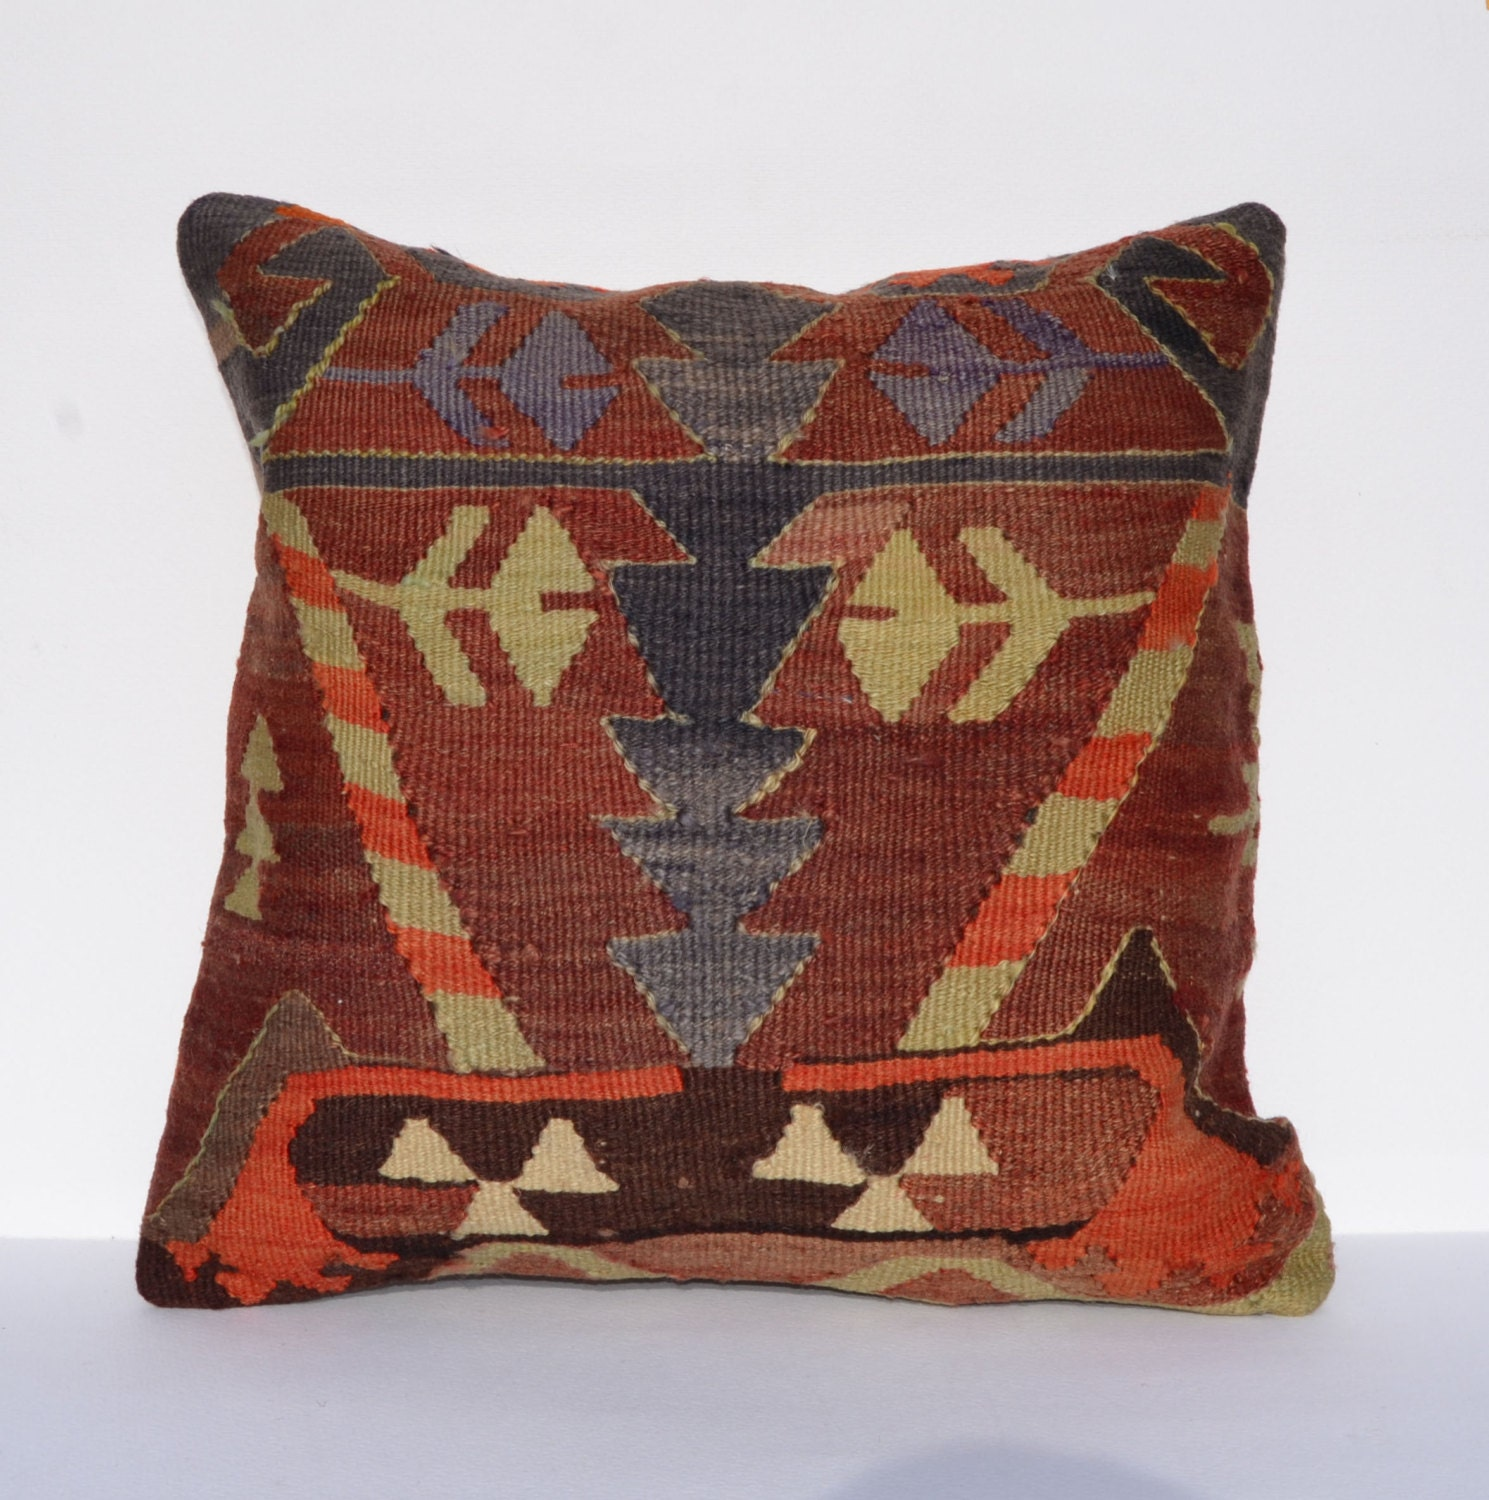 Throw Pillows King Size Bed : Decorative Pillows Pillow Cases kilim pillow 16 by PillowsHistoric